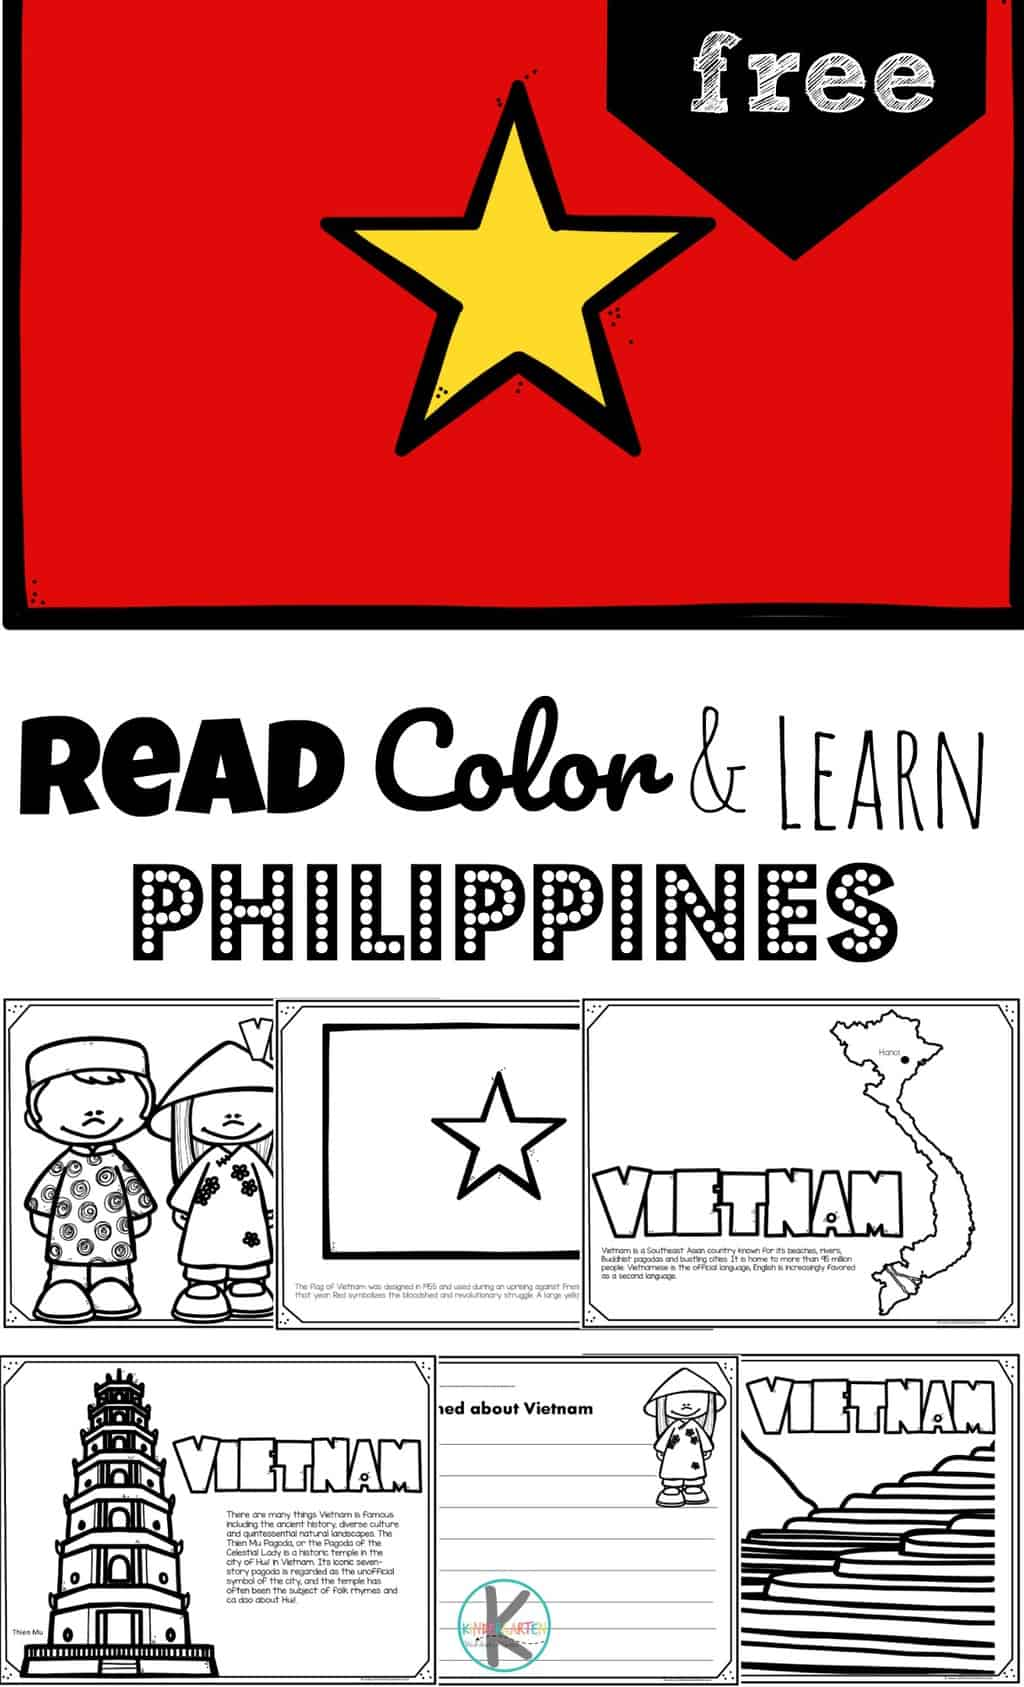 Free Read Color And Learn About Vietnam For Kids